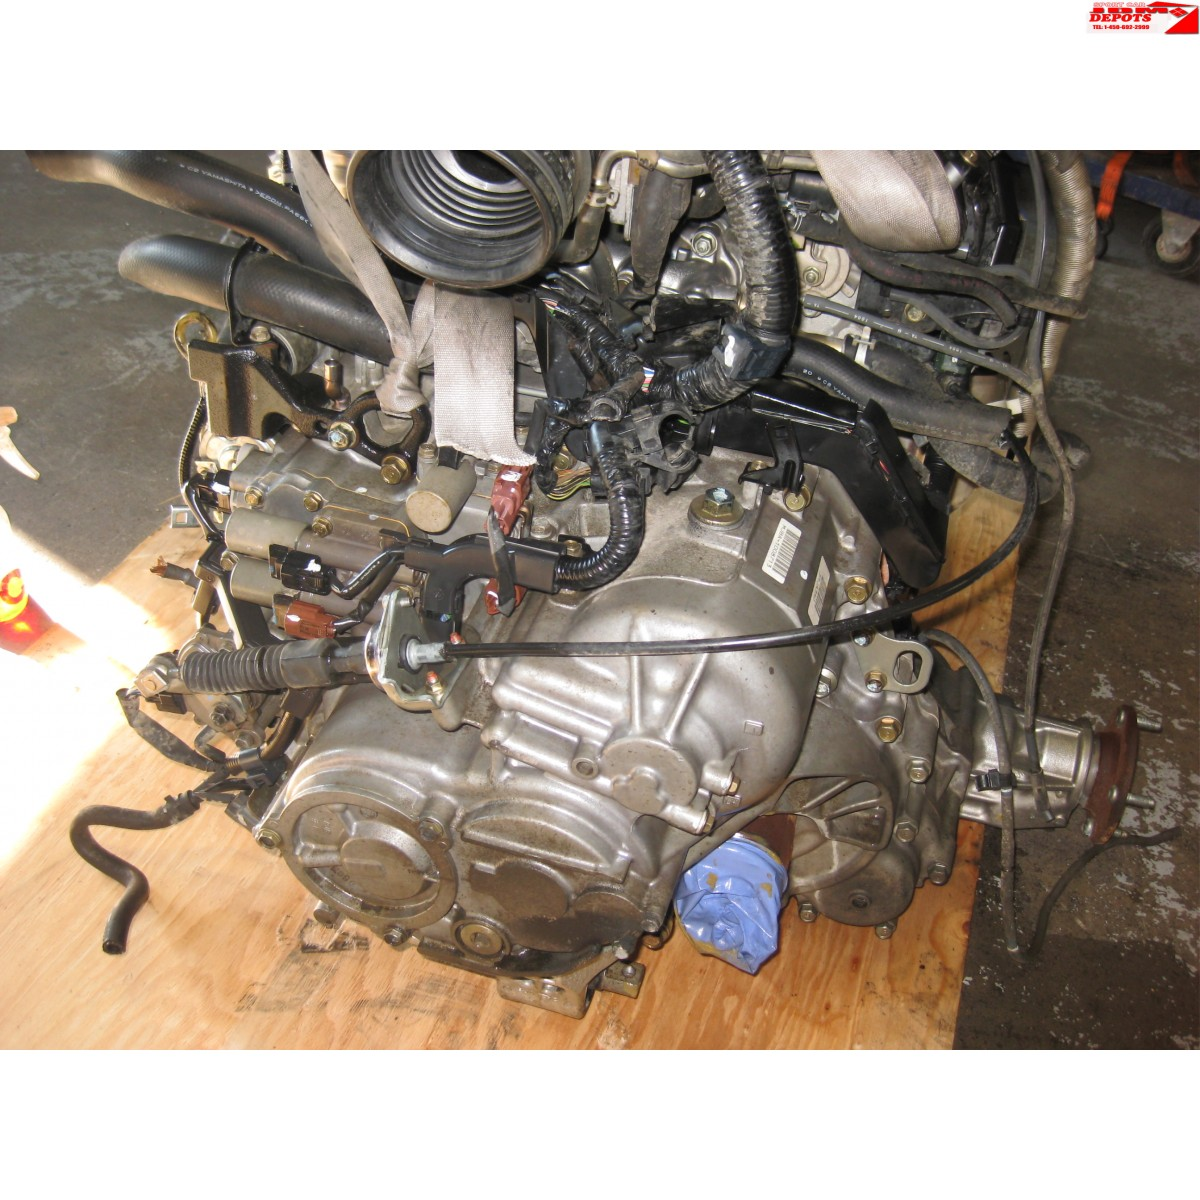 Your No 1 Source For All Jdm Engines Jdm Transmissions Jdm Parts Tel 1 450 692 2999 2005 2006 2007 2008 Acura Rl 3 5l J35a Sohc Vtec V6 4wd Awd Automatic Transmission Jdm Low Mileage Acura Rl Auto Trans